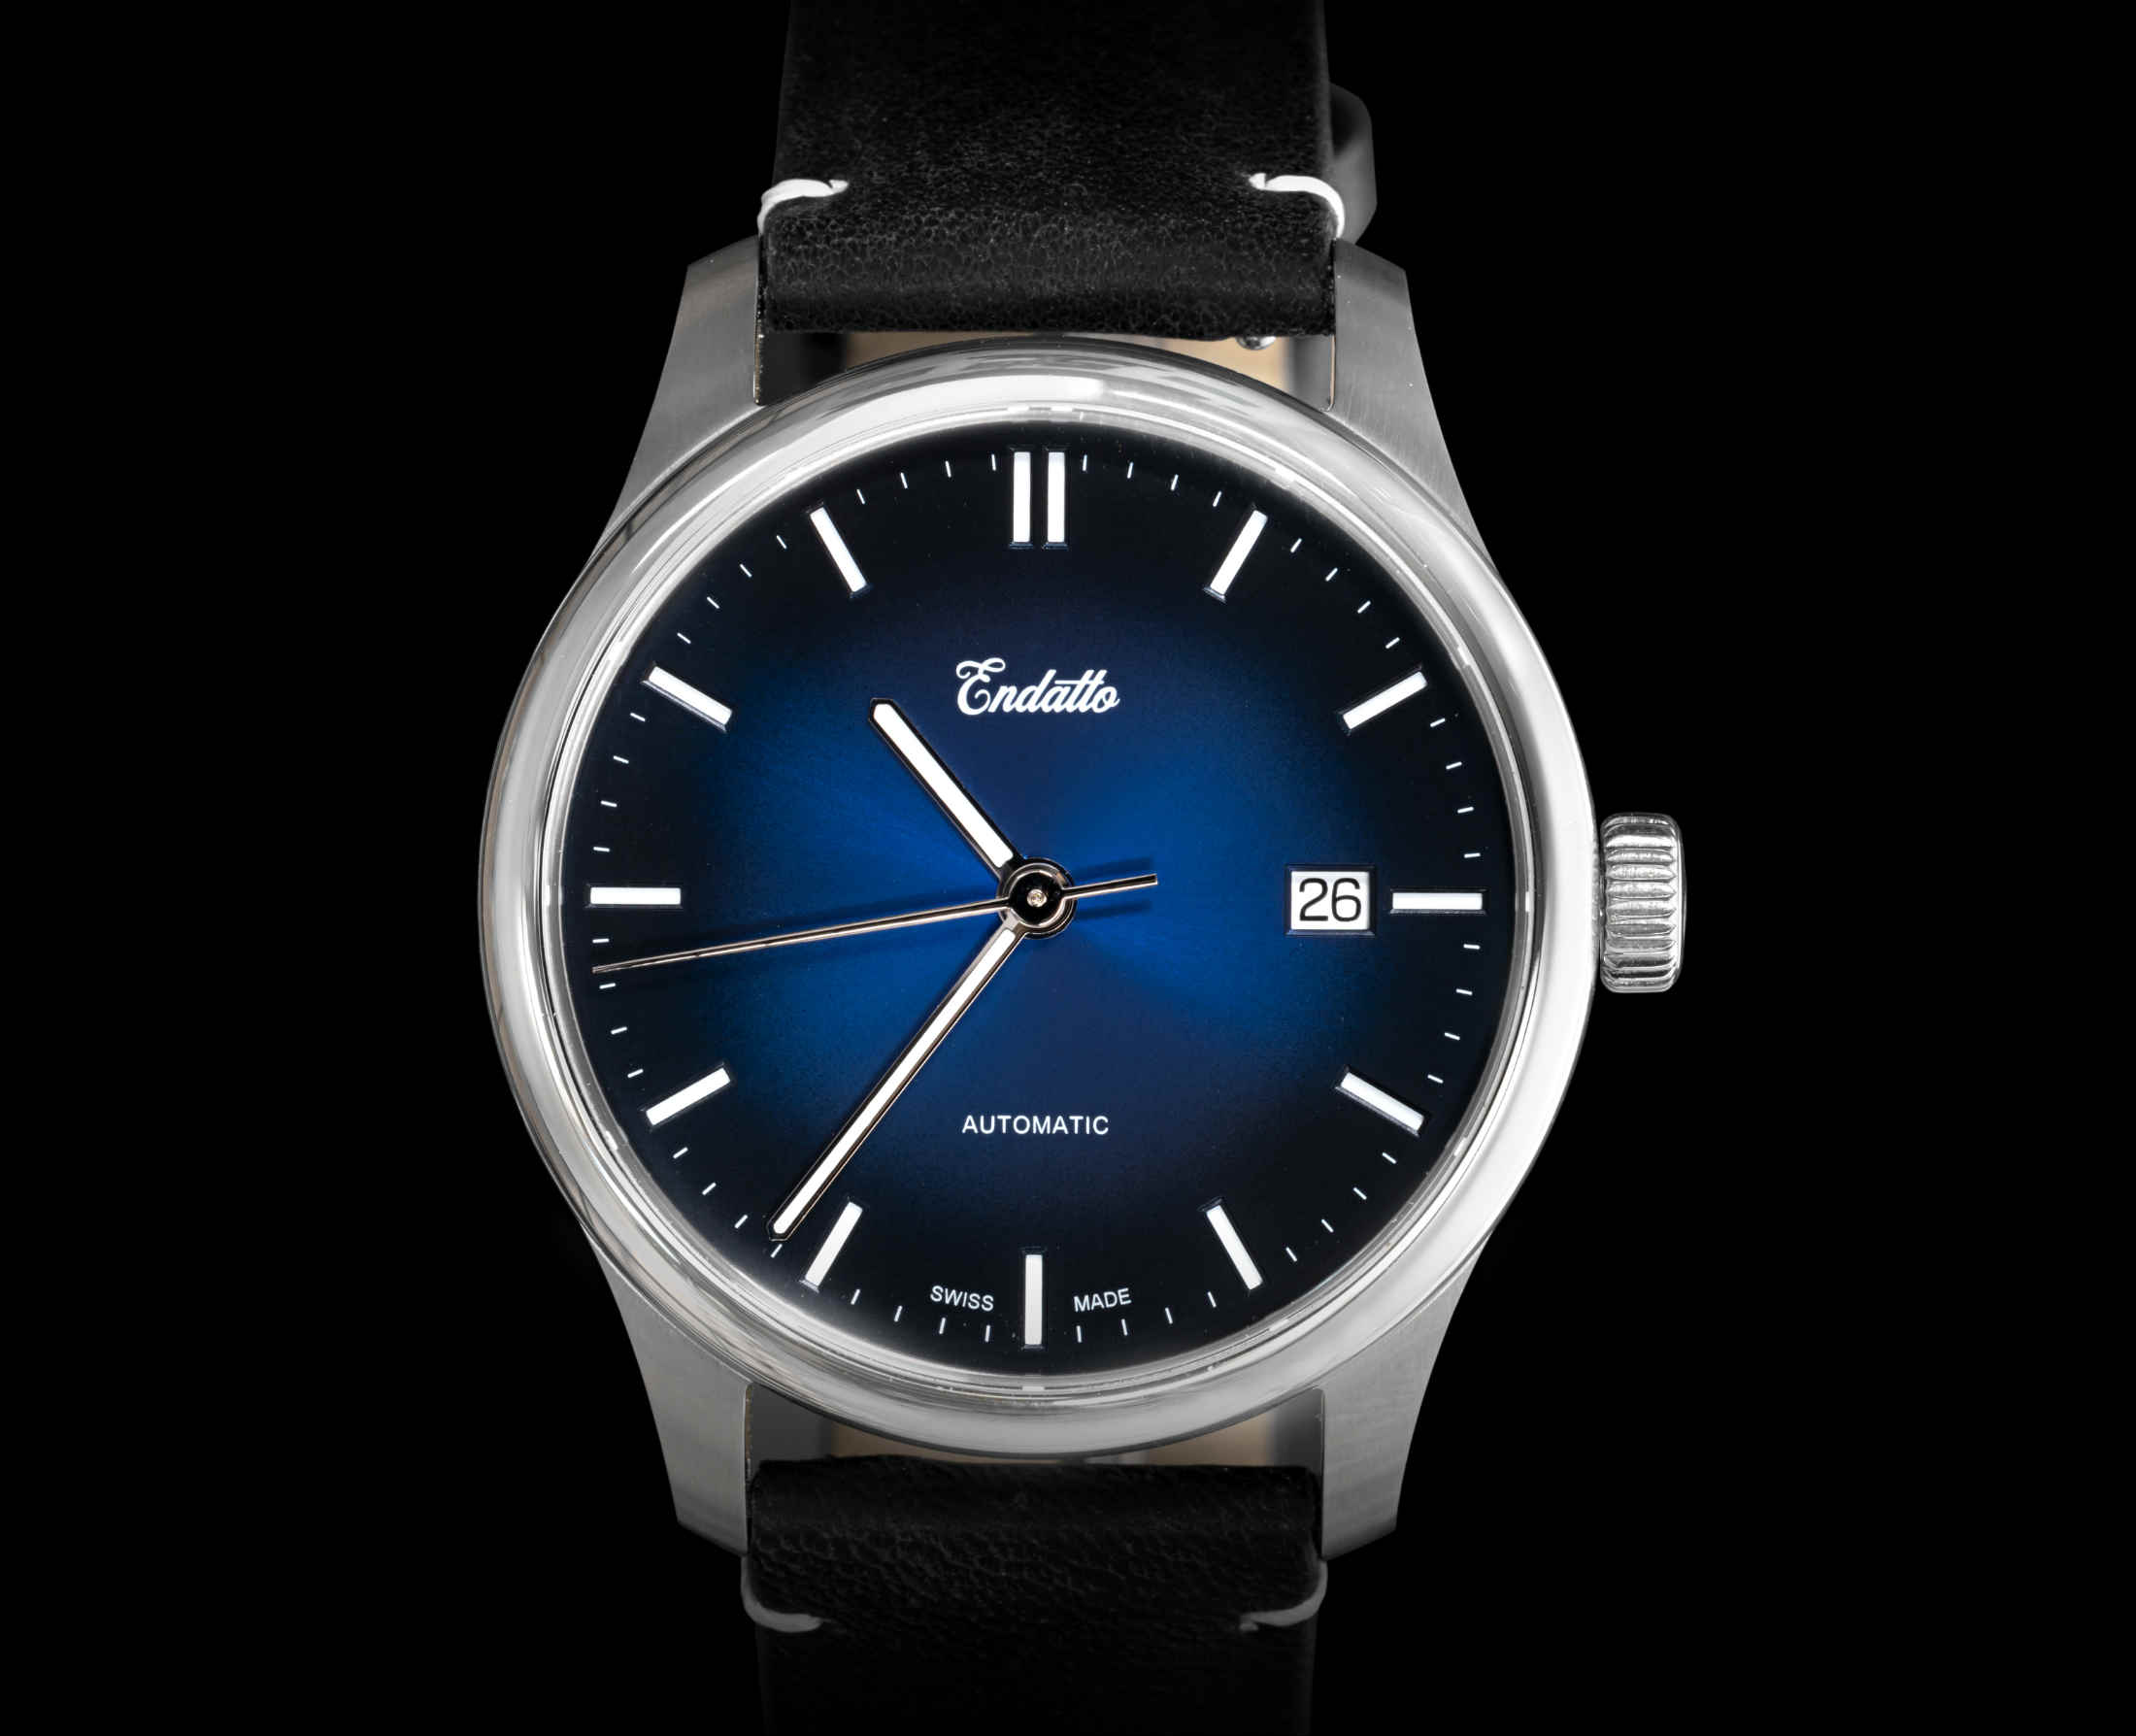 Endatto Swiss made watches